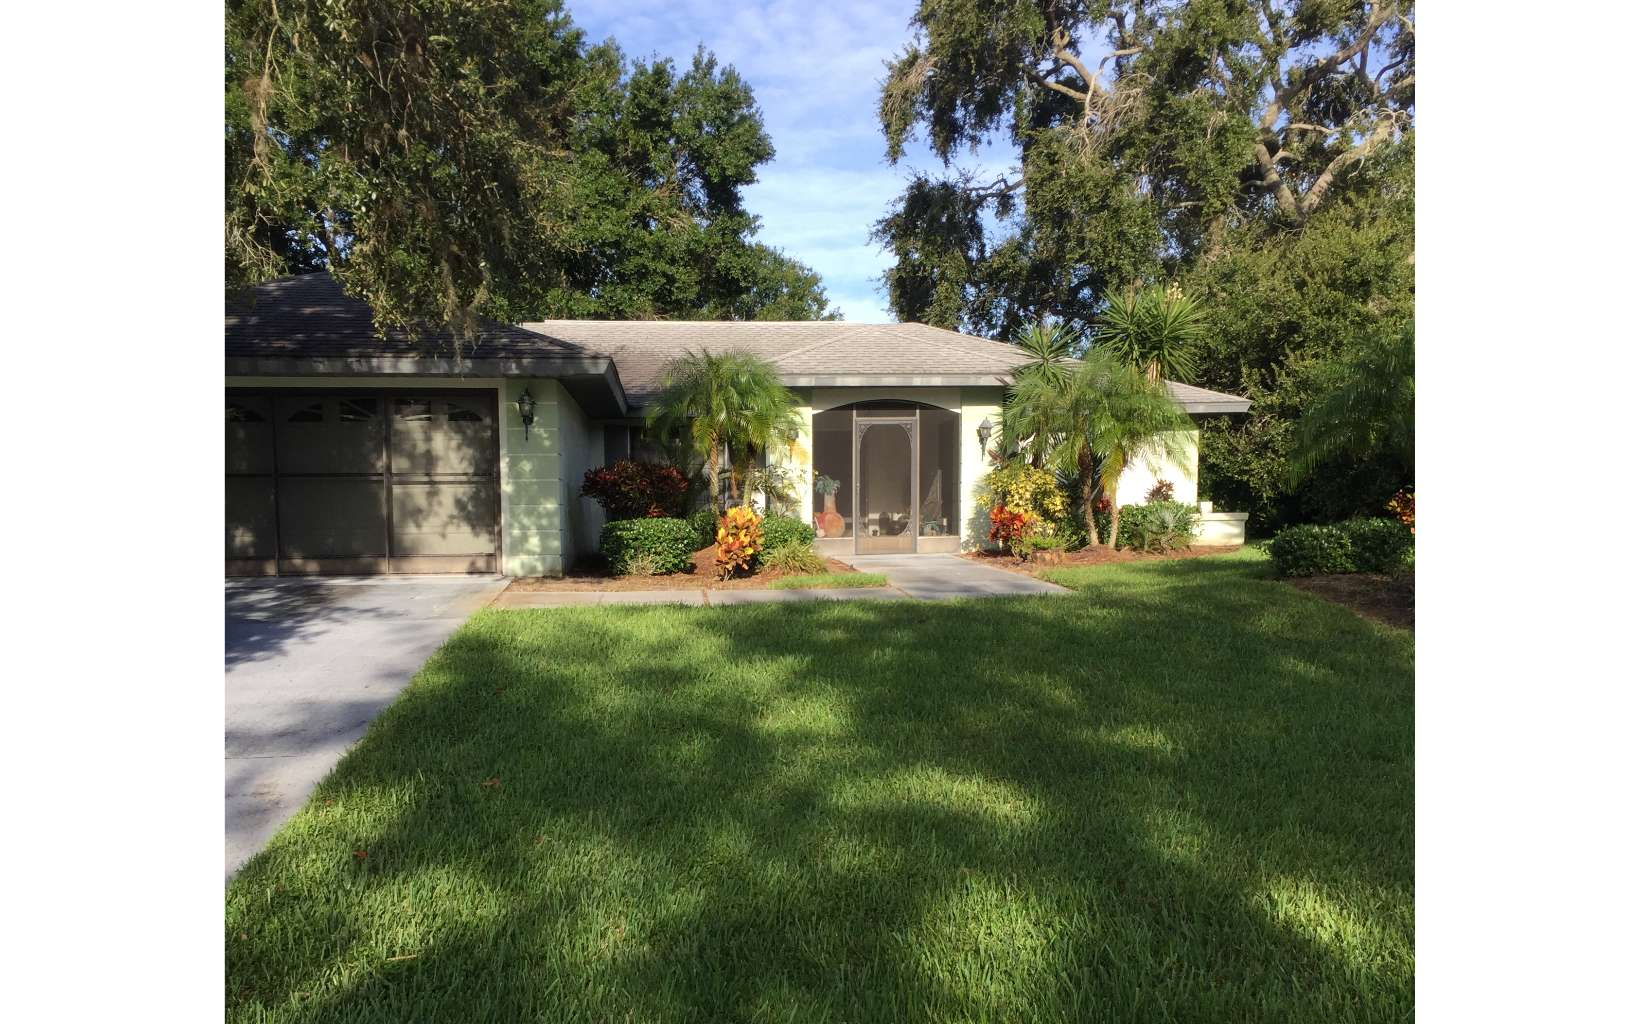 149 Crestview Ter, Lake Placid, FL 33852